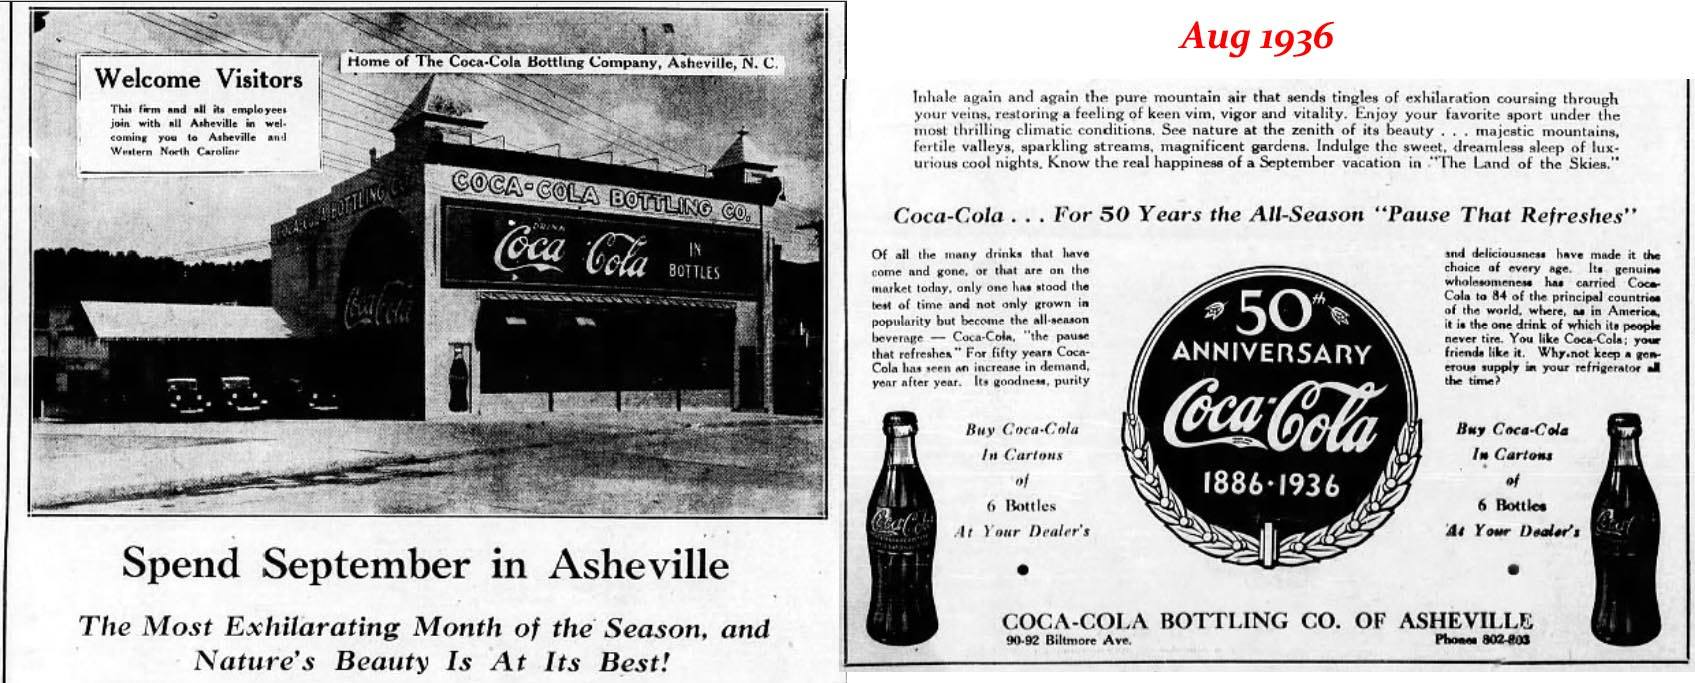 French Broad Food Co-op Building in 1936